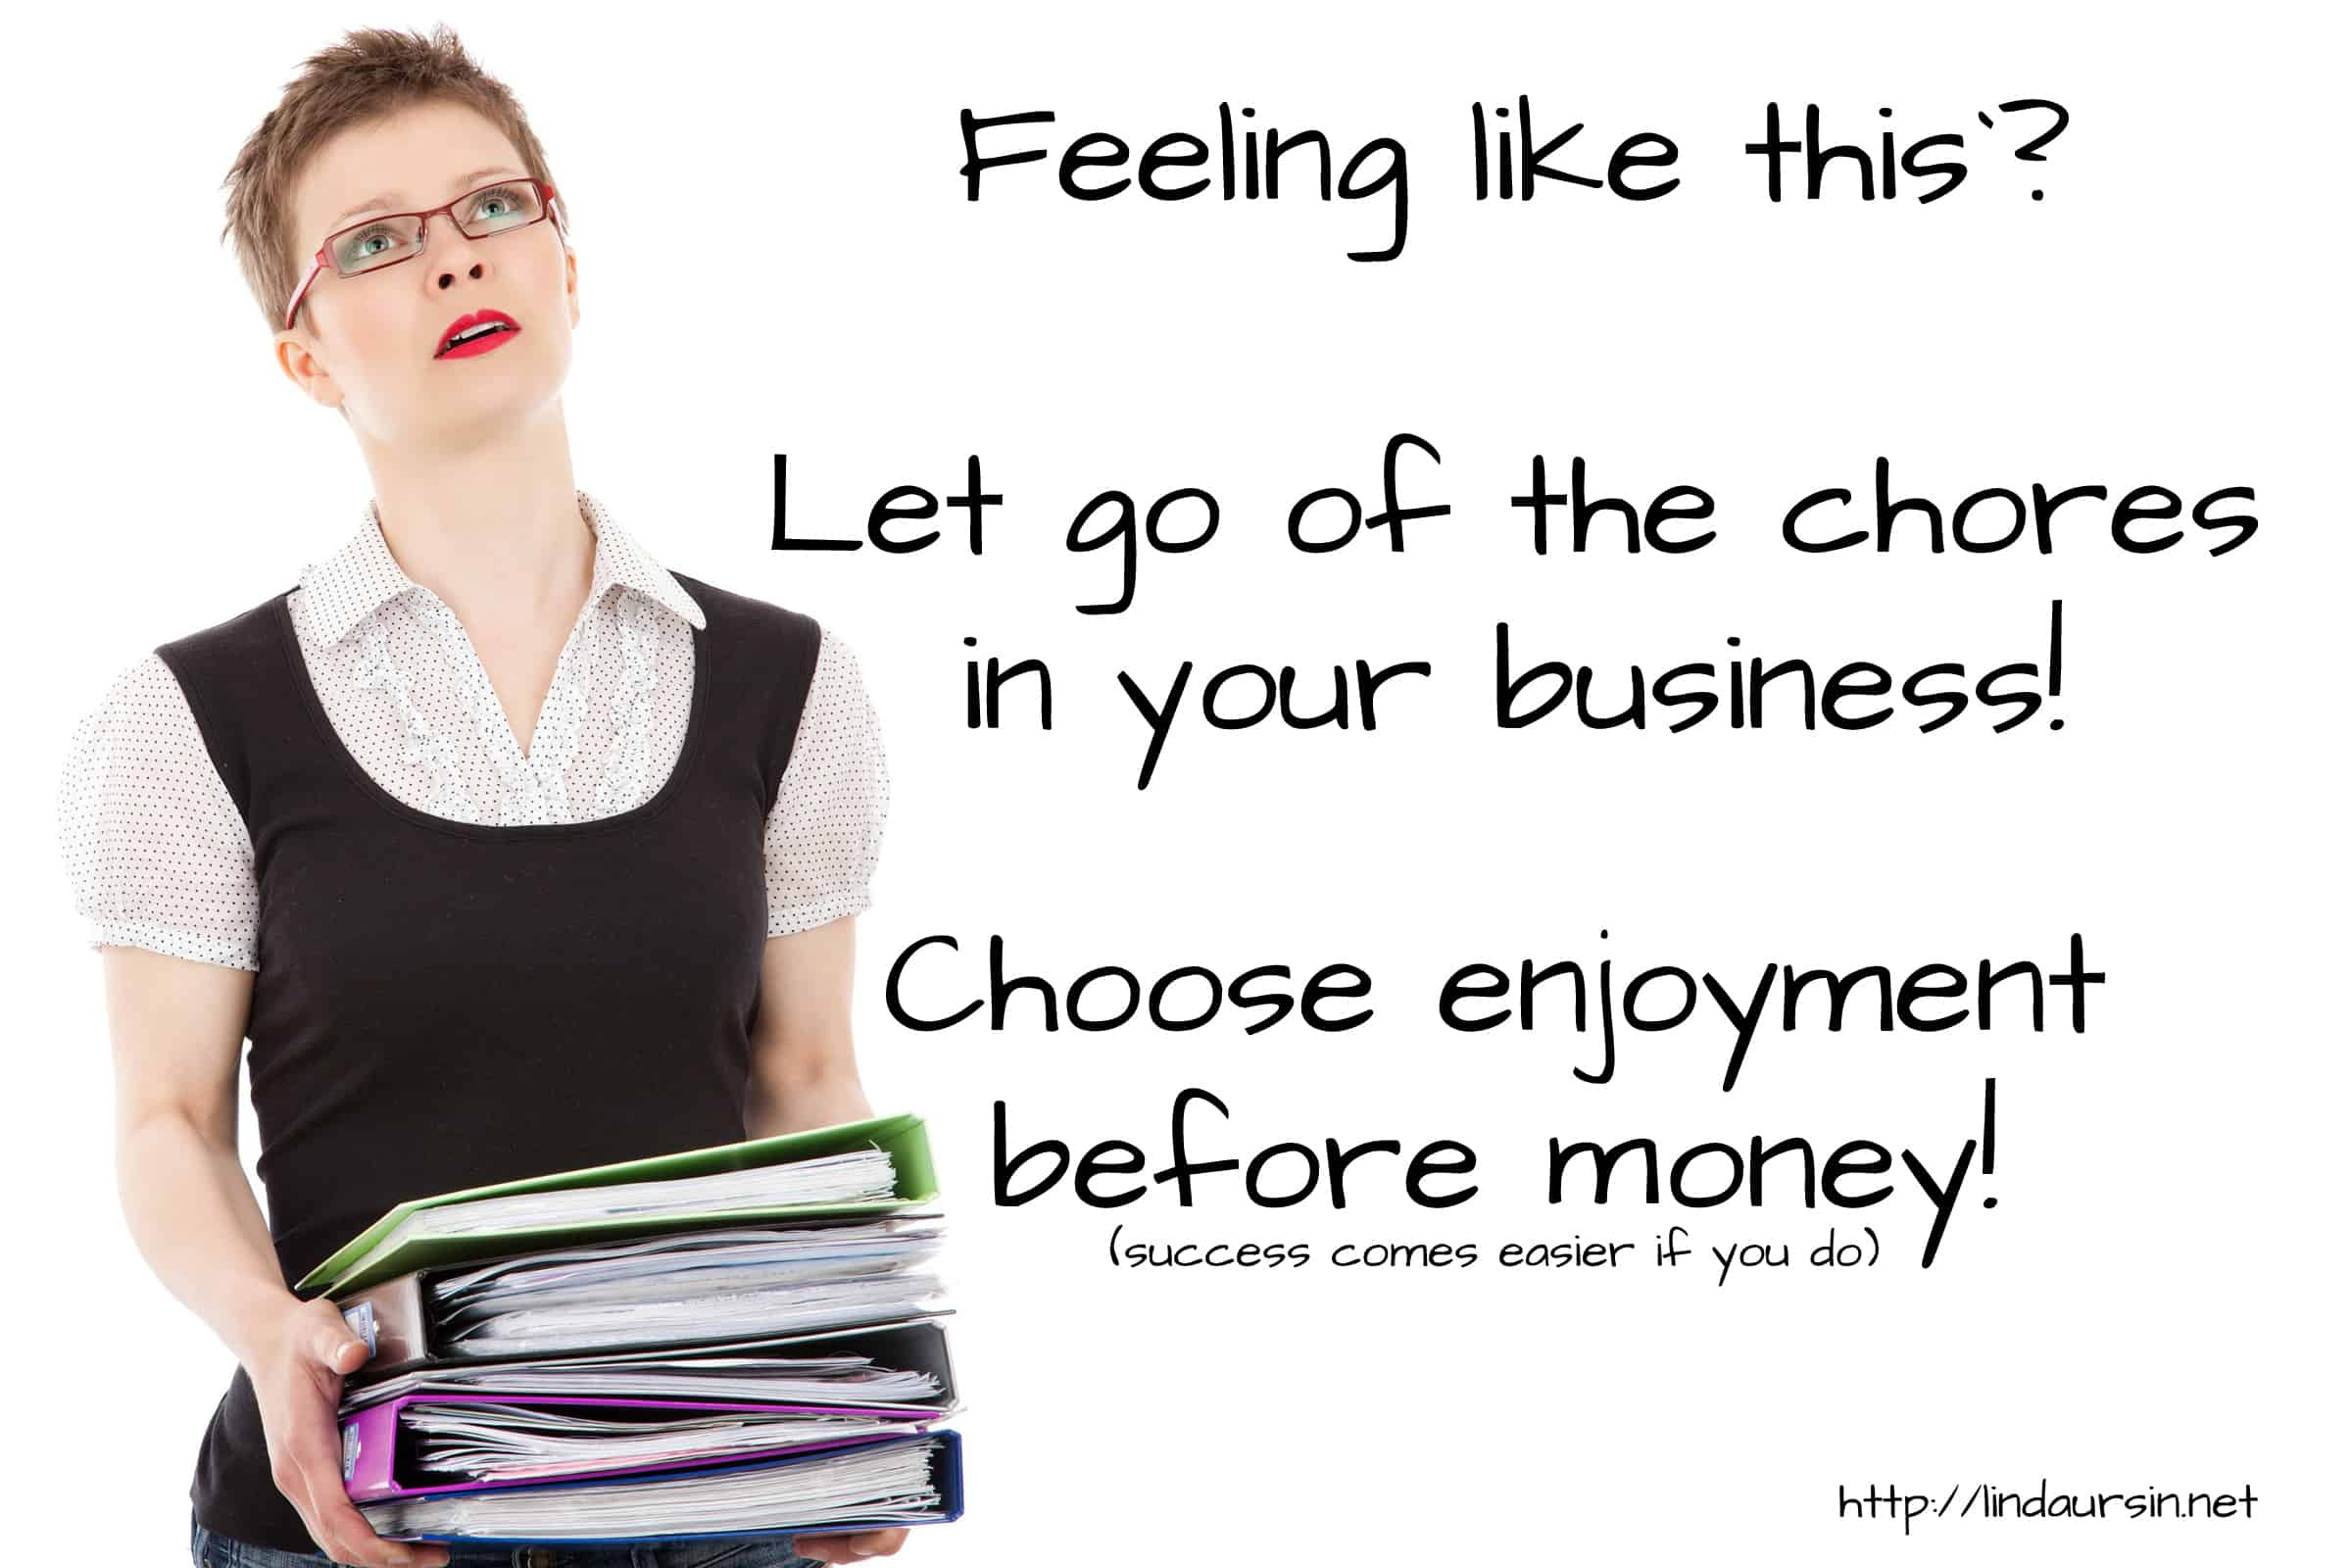 A woman with a stack of binders and the text: Feeling like this? Let go of the chores in your business! Choose enjoyment before money! (success comes easier if you do)